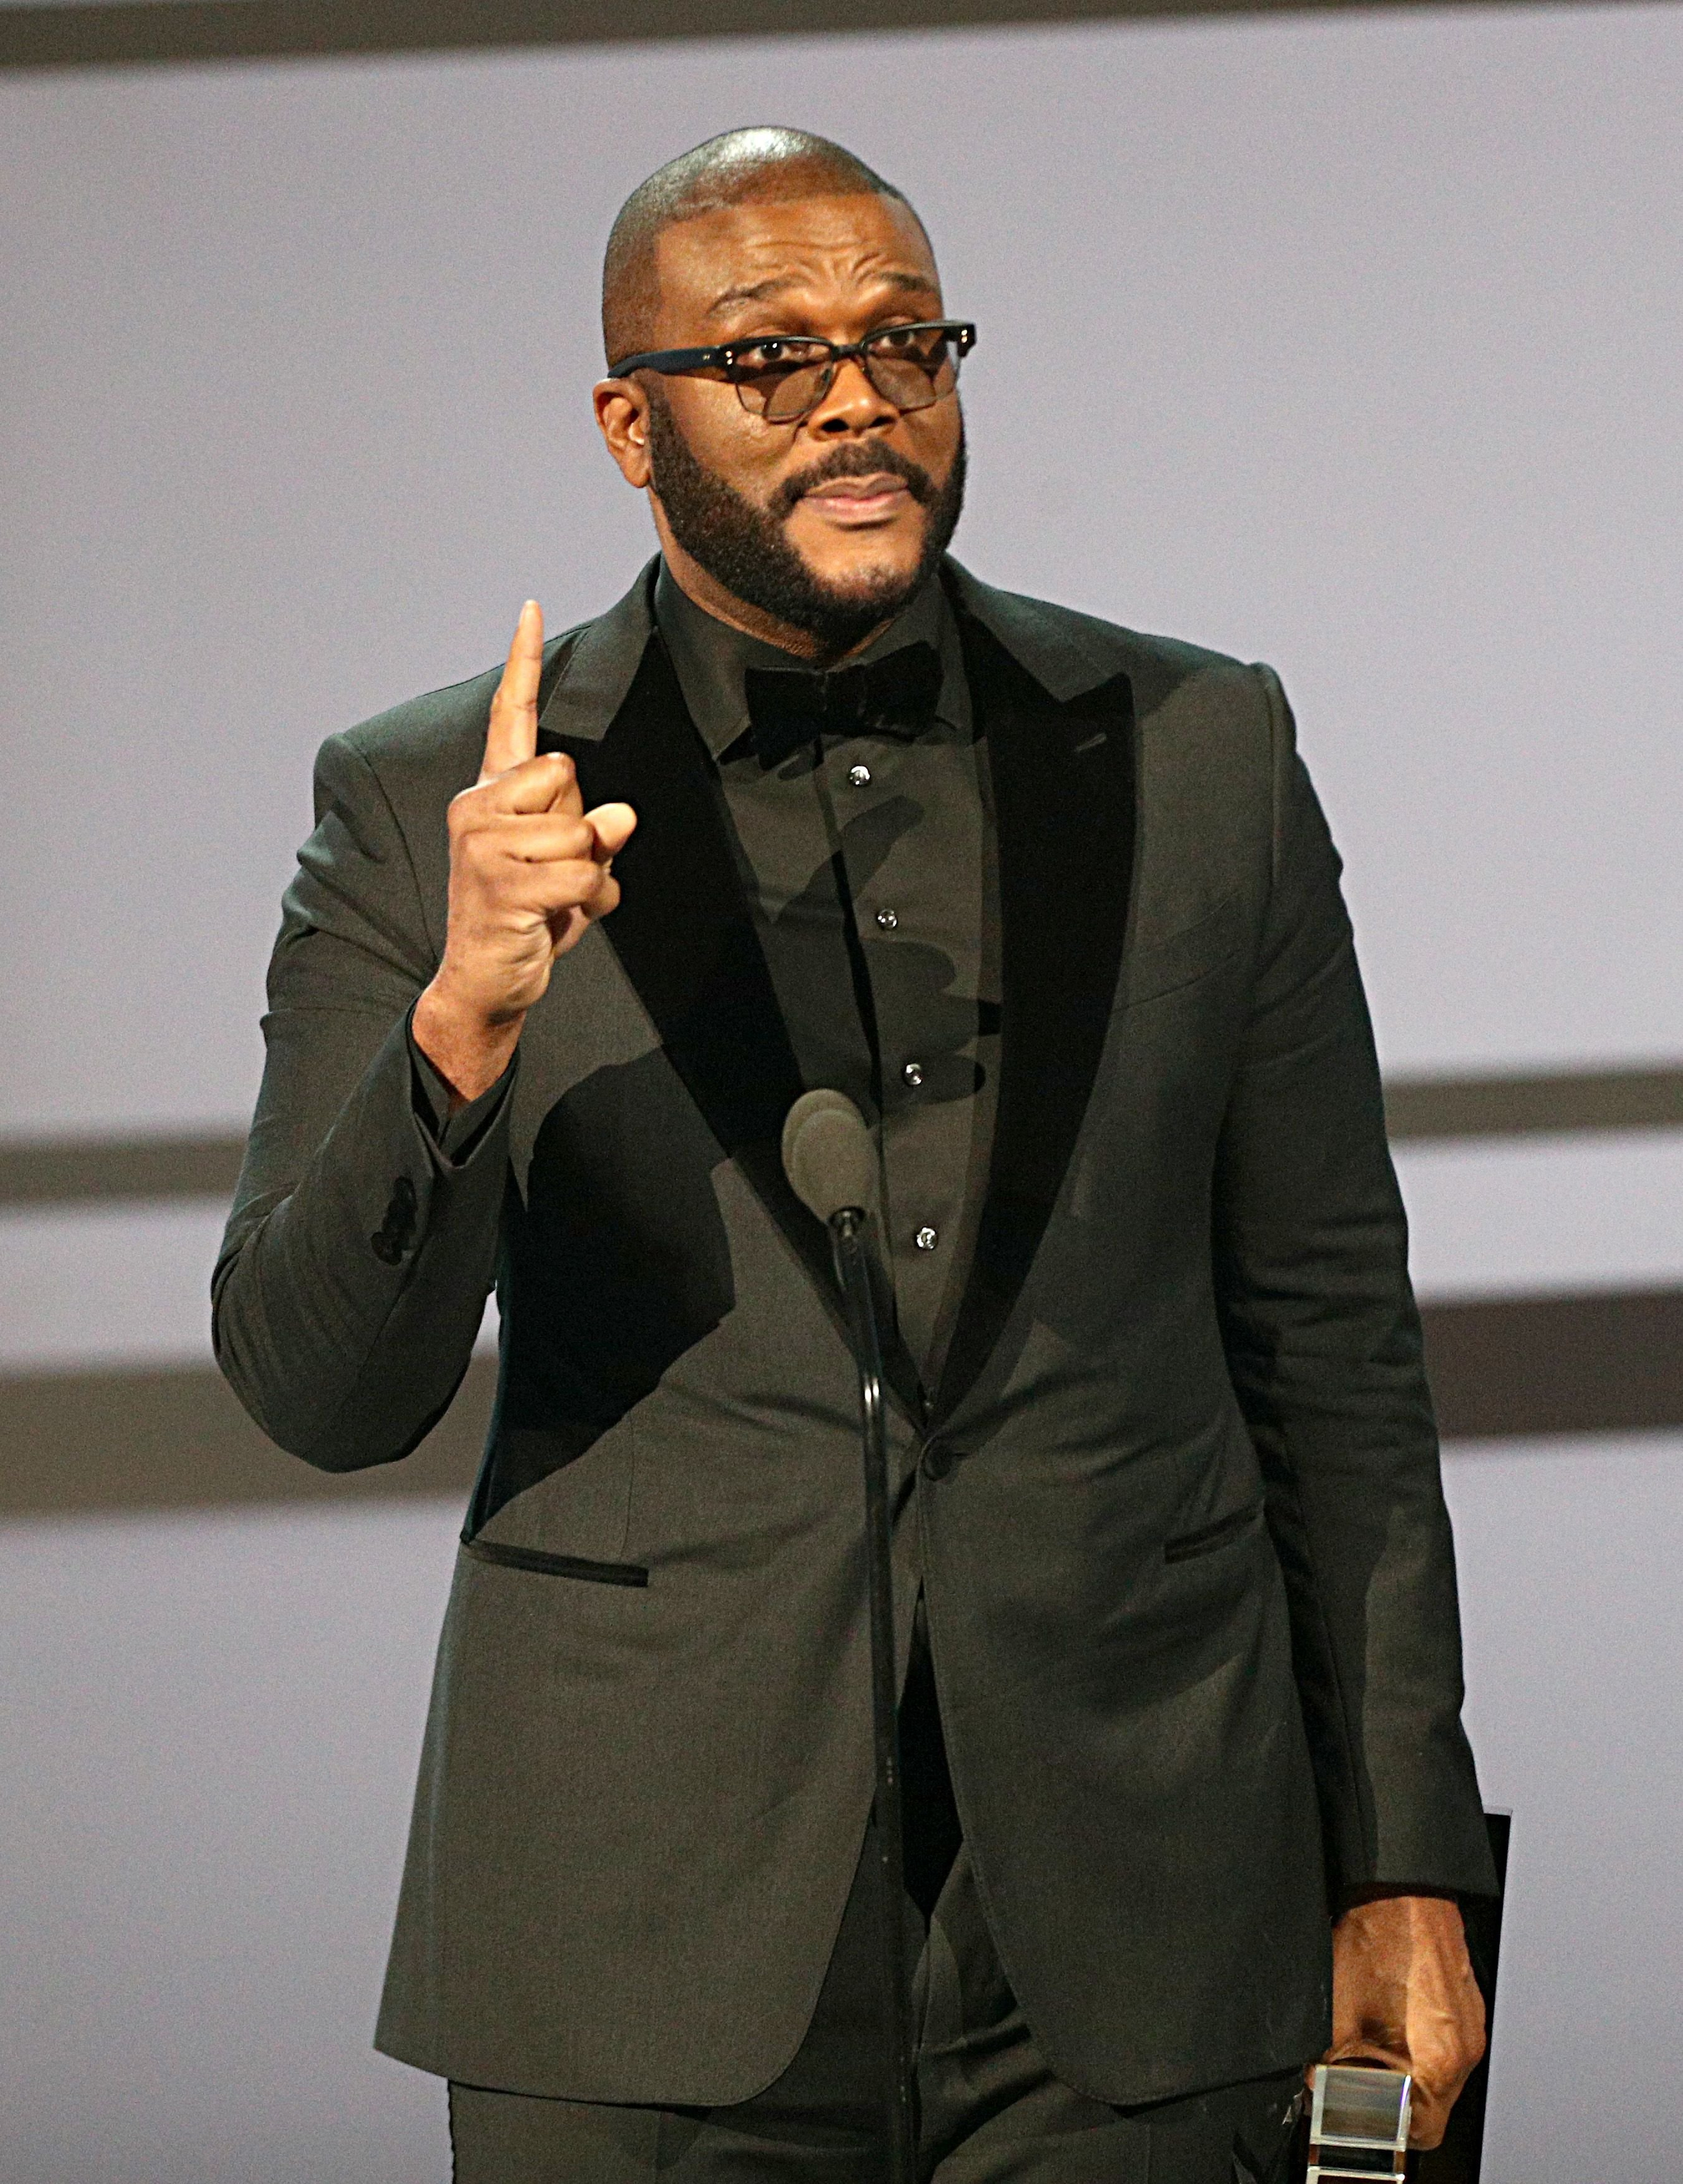 Tyler Perry accepts the Ultimate Icon Award onstage at the 2019 BET Awards at Microsoft Theater on June 23, 2019 in Los Angeles, California. | Source: Getty Images